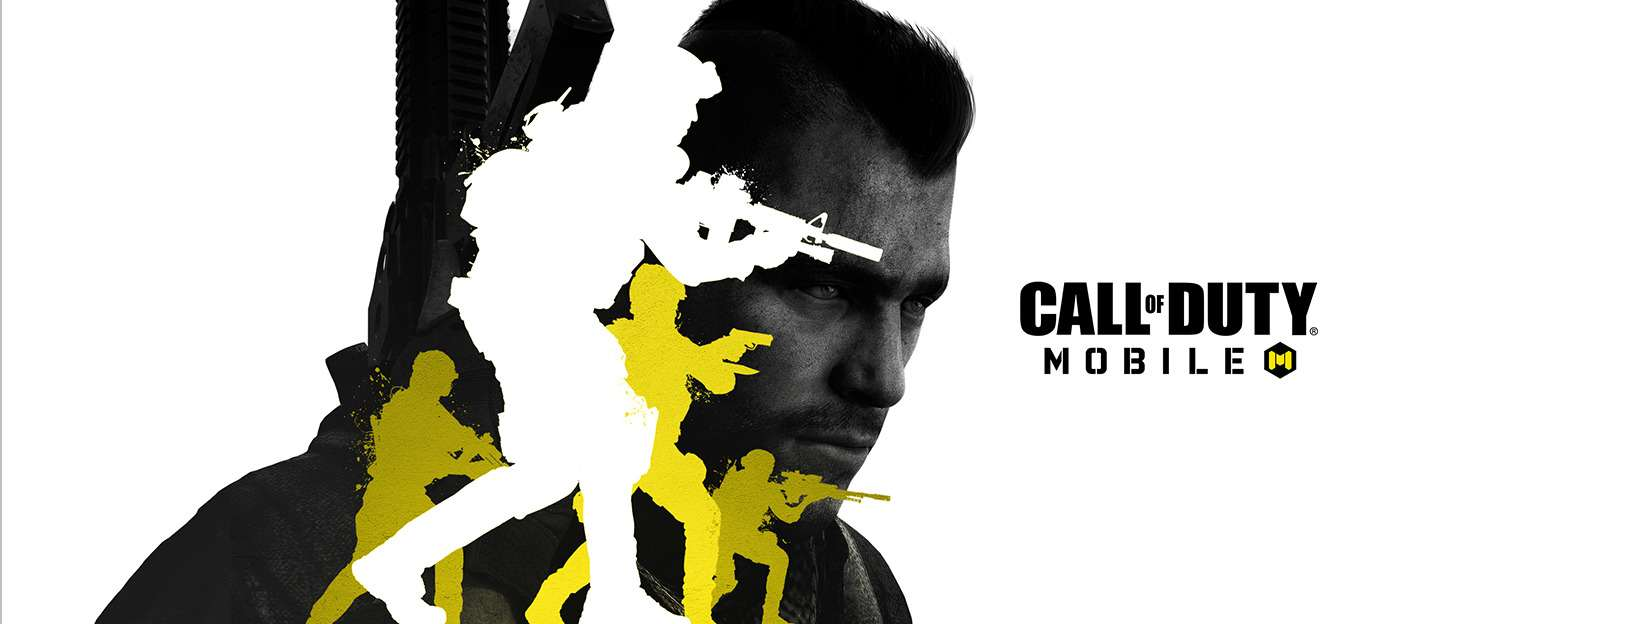 Call of Duty mobile release, cod mobile release